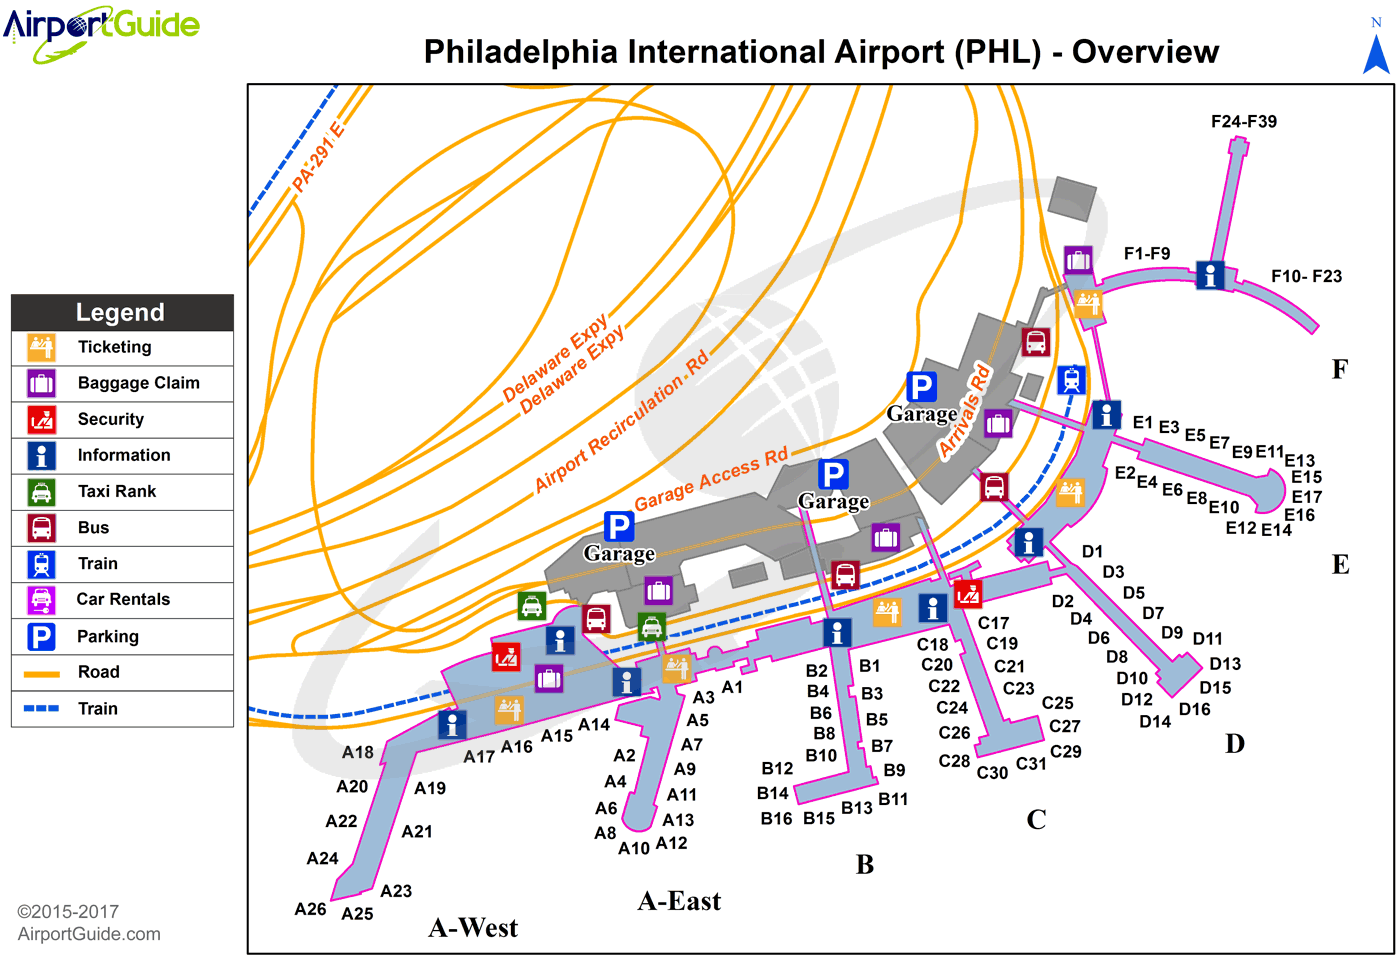 Philadelphia - Philadelphia International (PHL) Airport Terminal Map - Overview